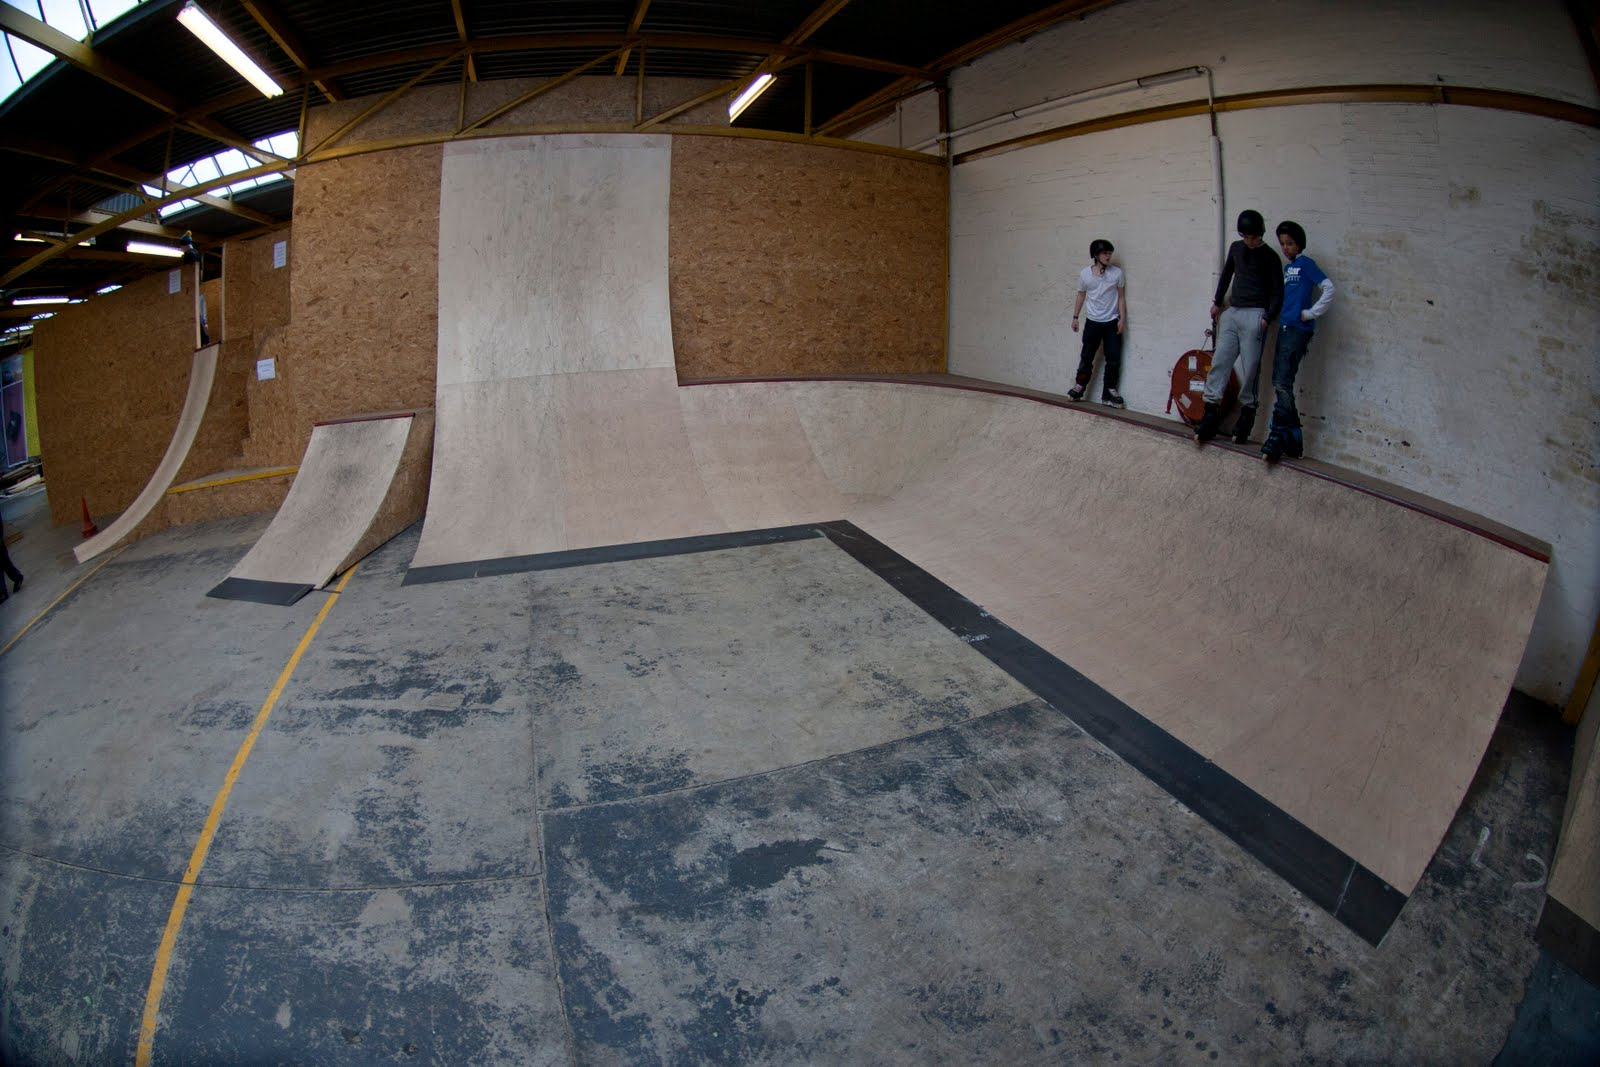 Shralp ya bass spot guide the garage skatepark